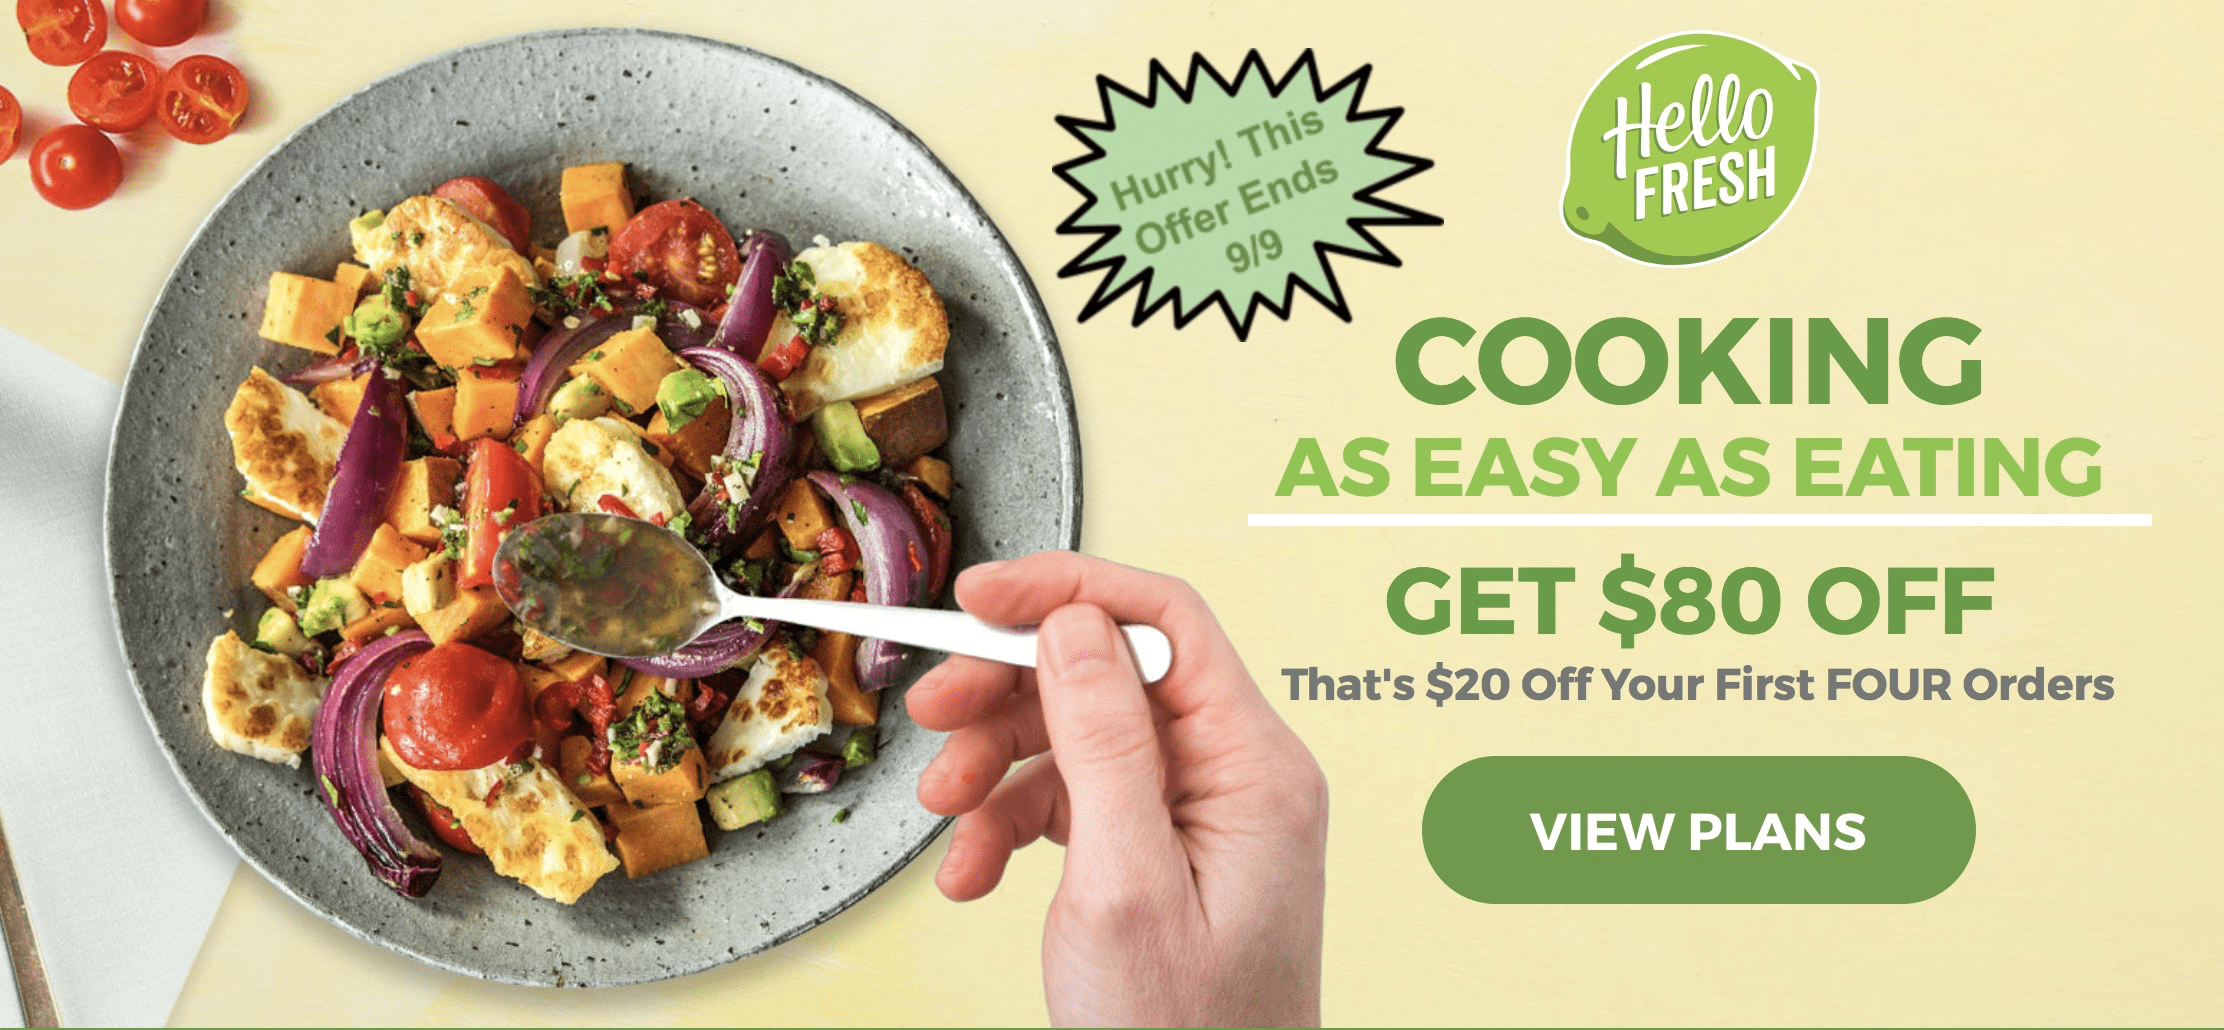 Hello Fresh Labor Day Coupon: $80 Off Your First Four Boxes! LAST DAY!